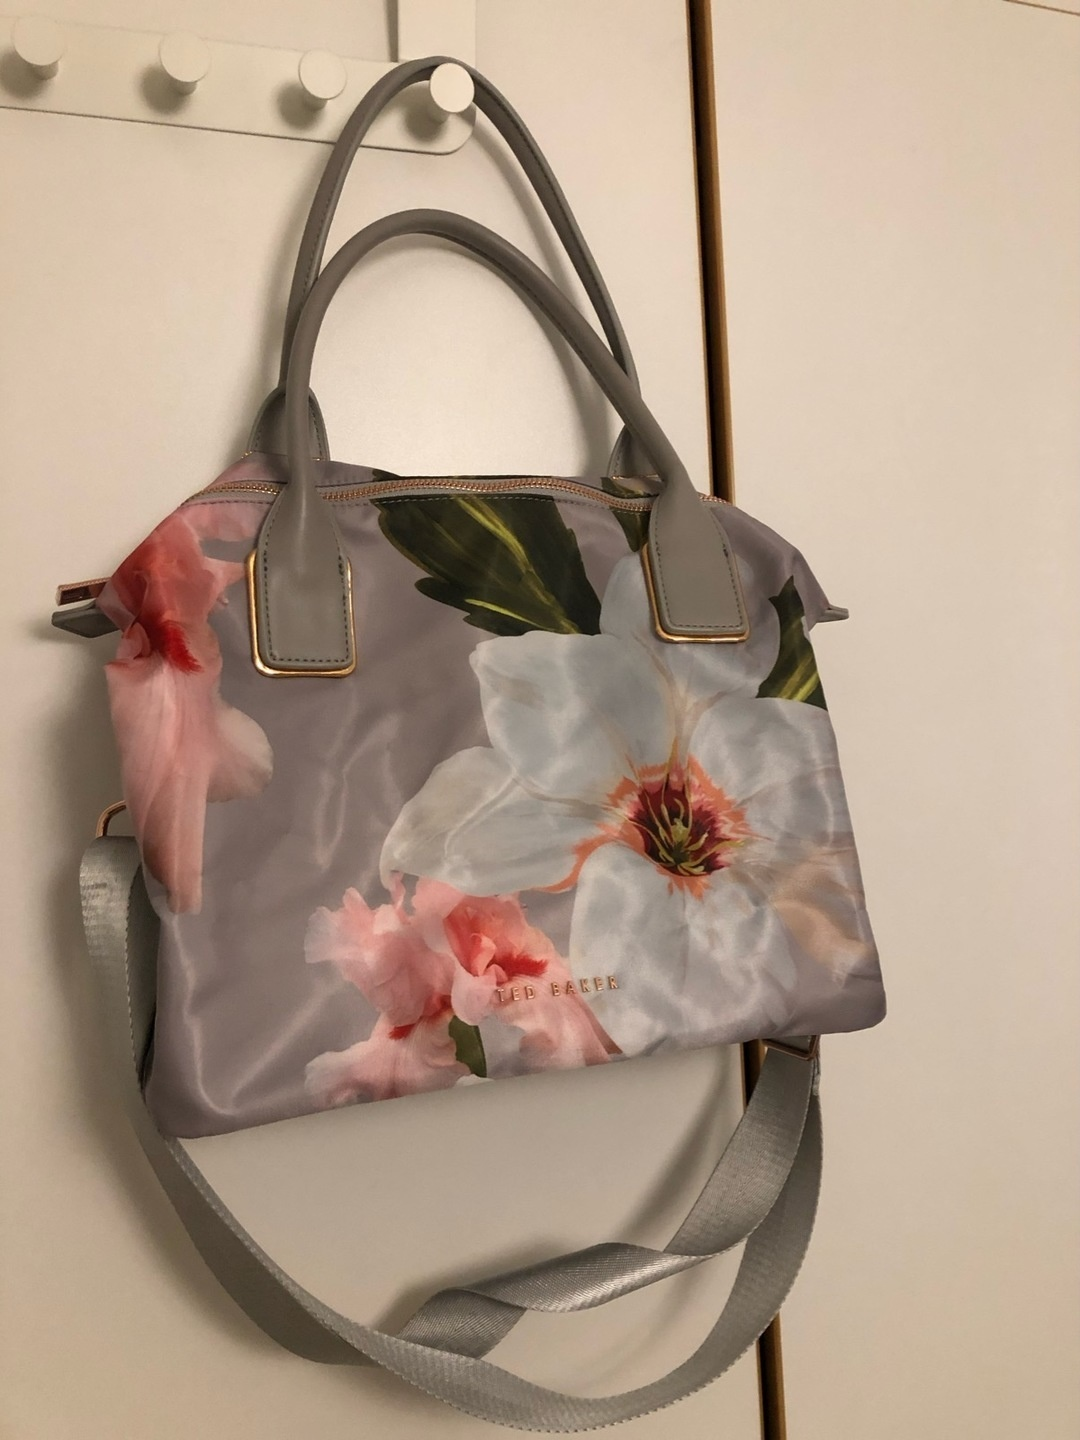 Women's bags & purses - TED BAKER photo 1